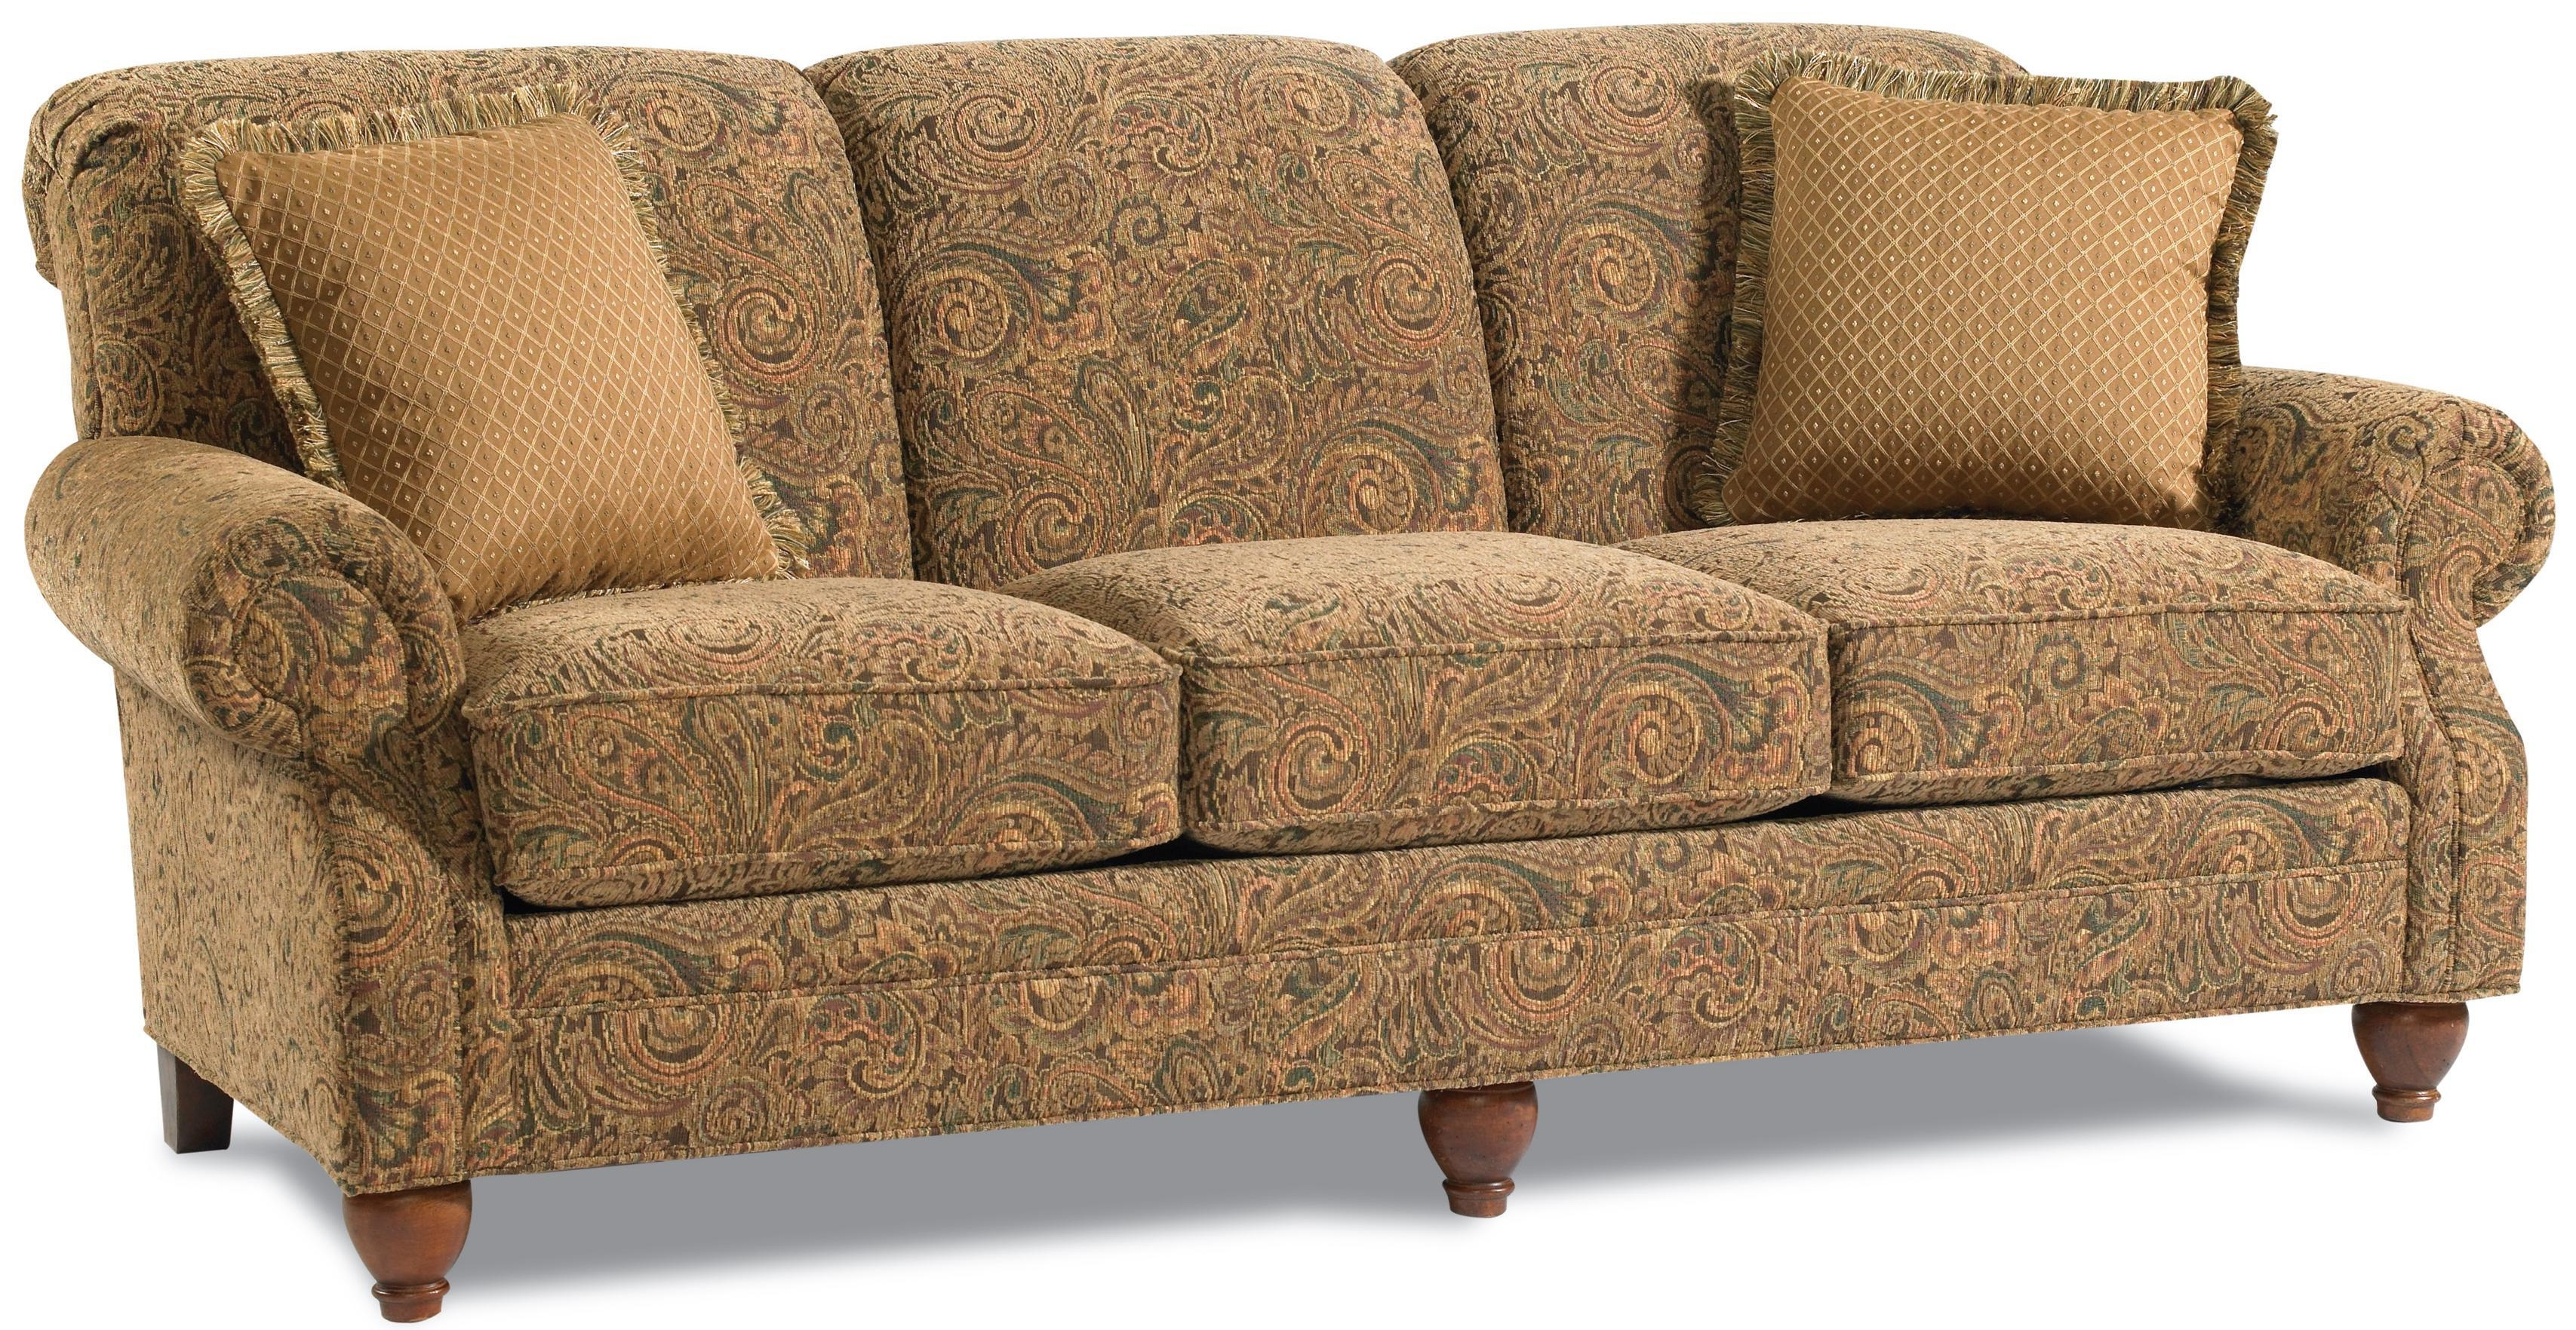 Etonnant Clayton Marcus Clementine 3274 Traditional Queen Sleeper Sofa With  Throughout Clayton Marcus Sofas (Image 1